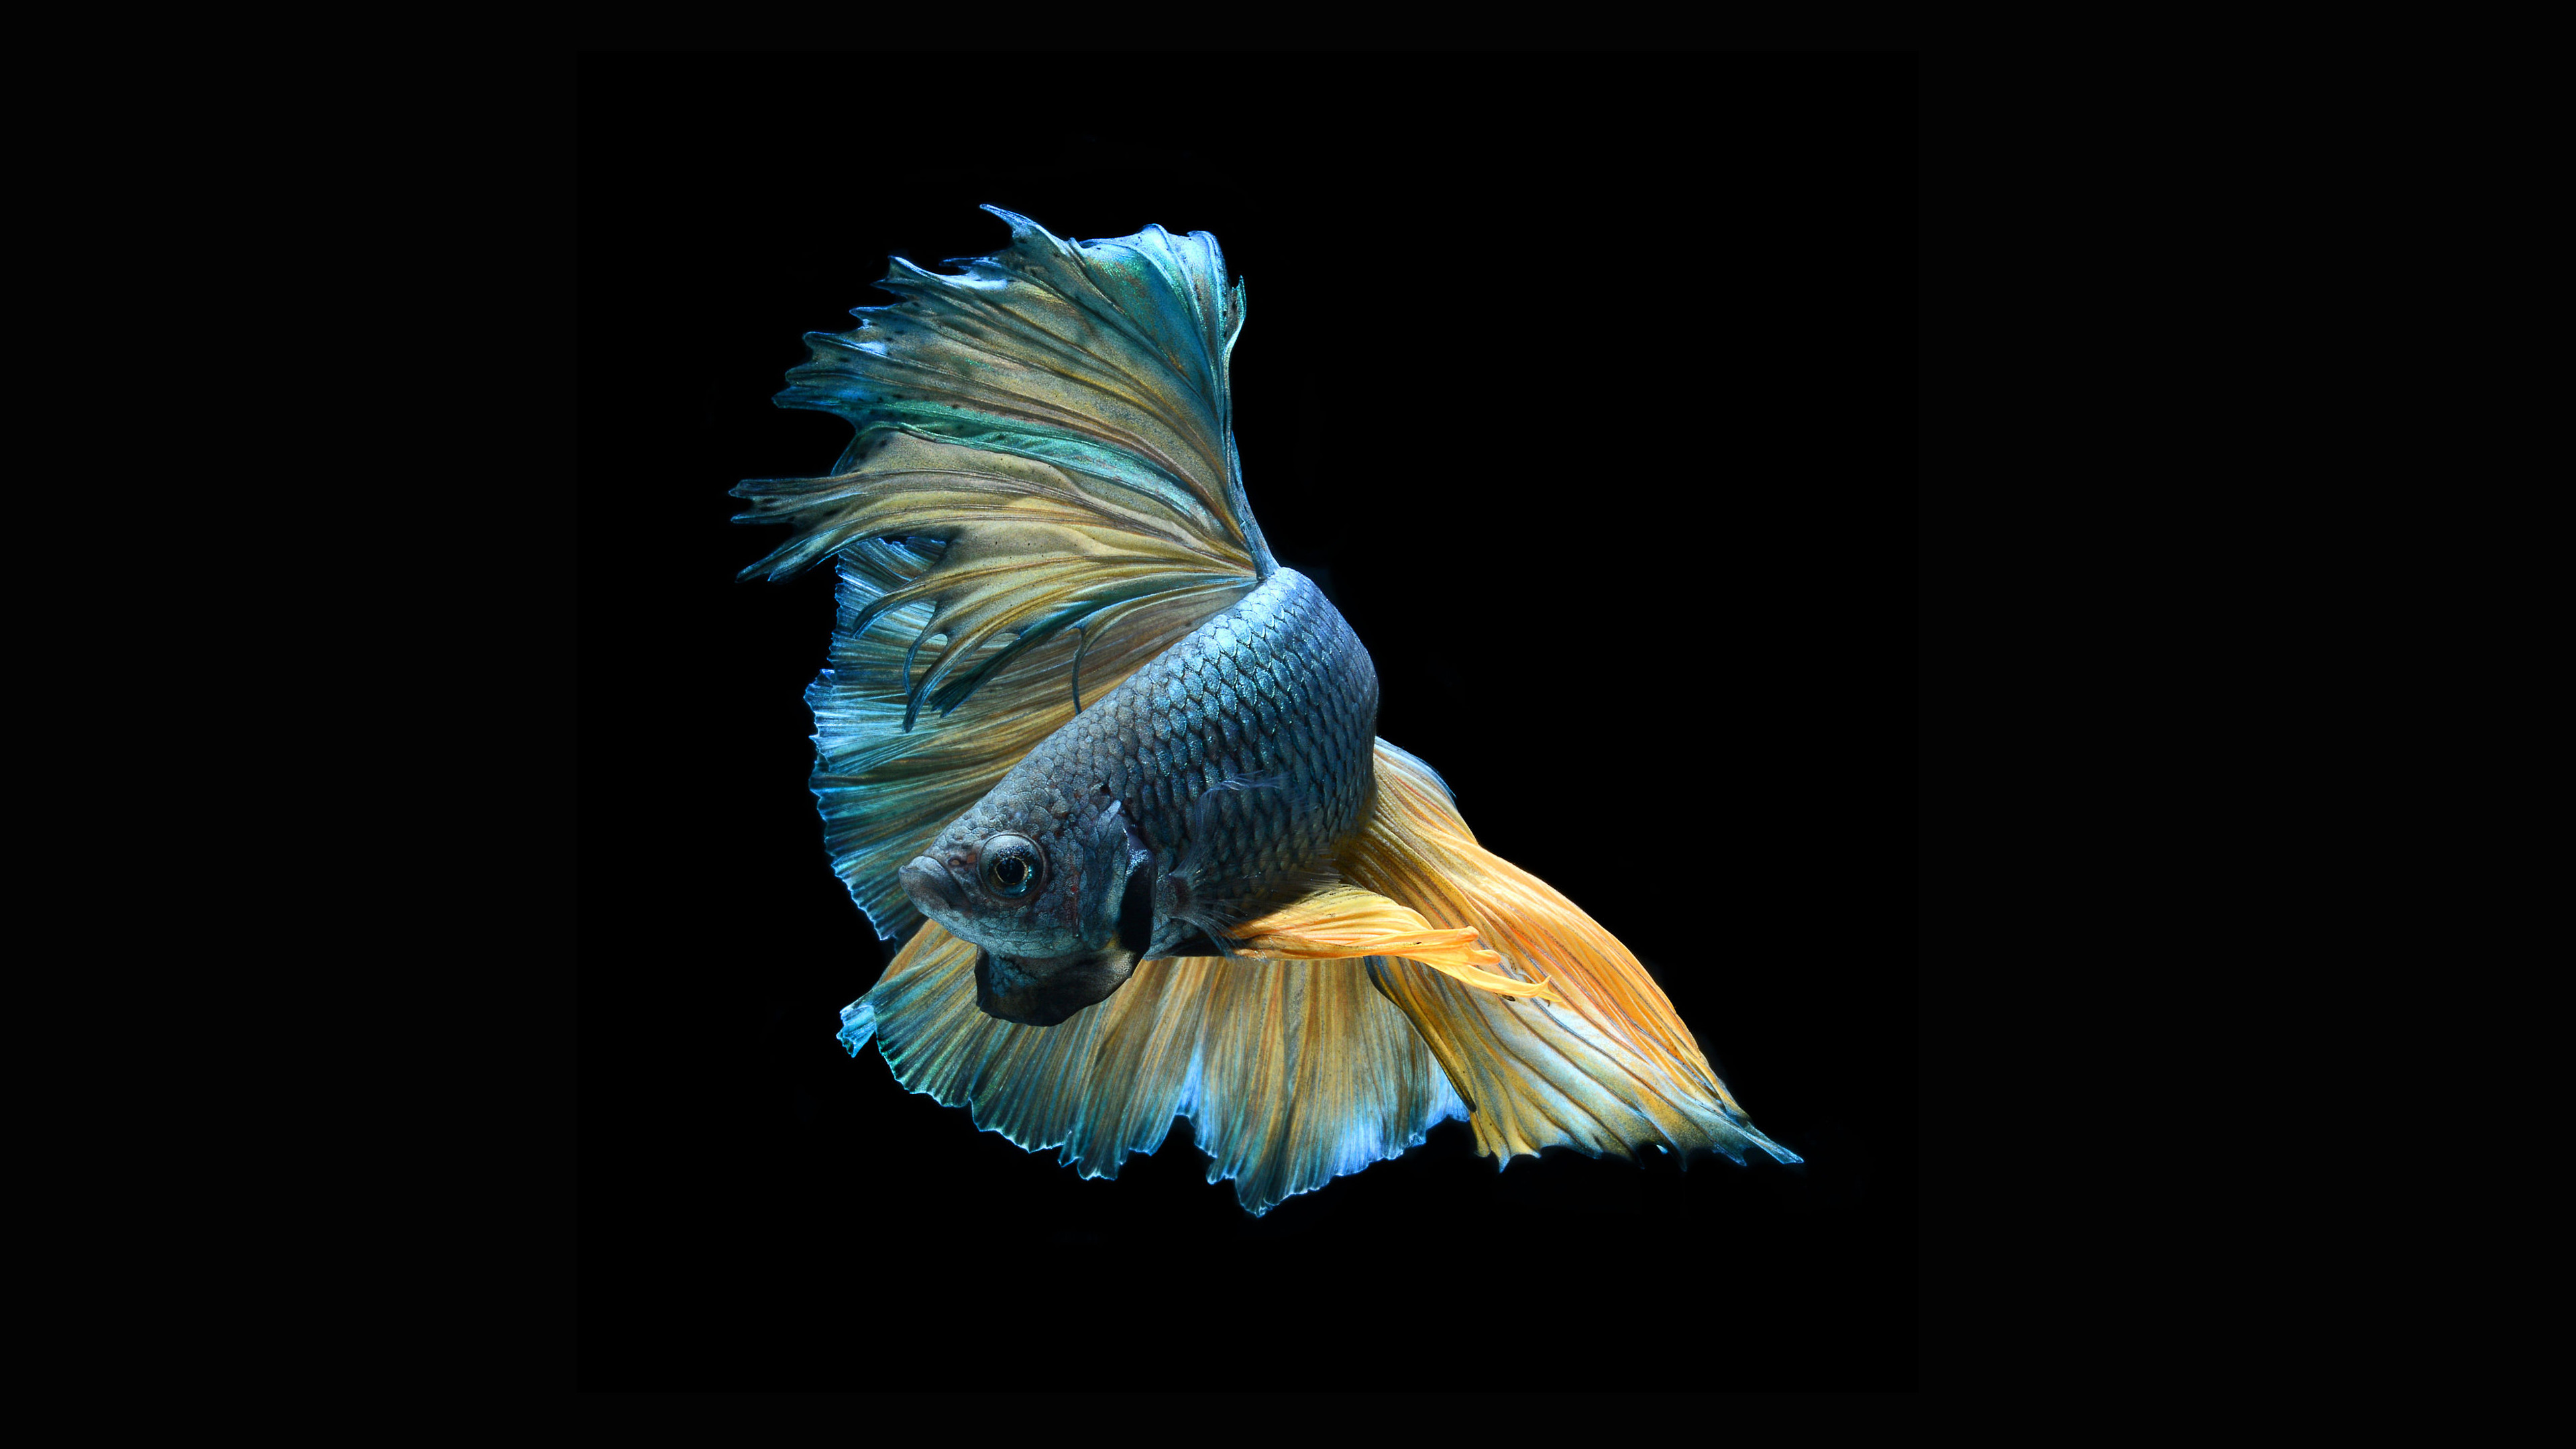 3840x2160 wallpaper.wiki-Art-Images-Betta-Fish-Download-PIC-